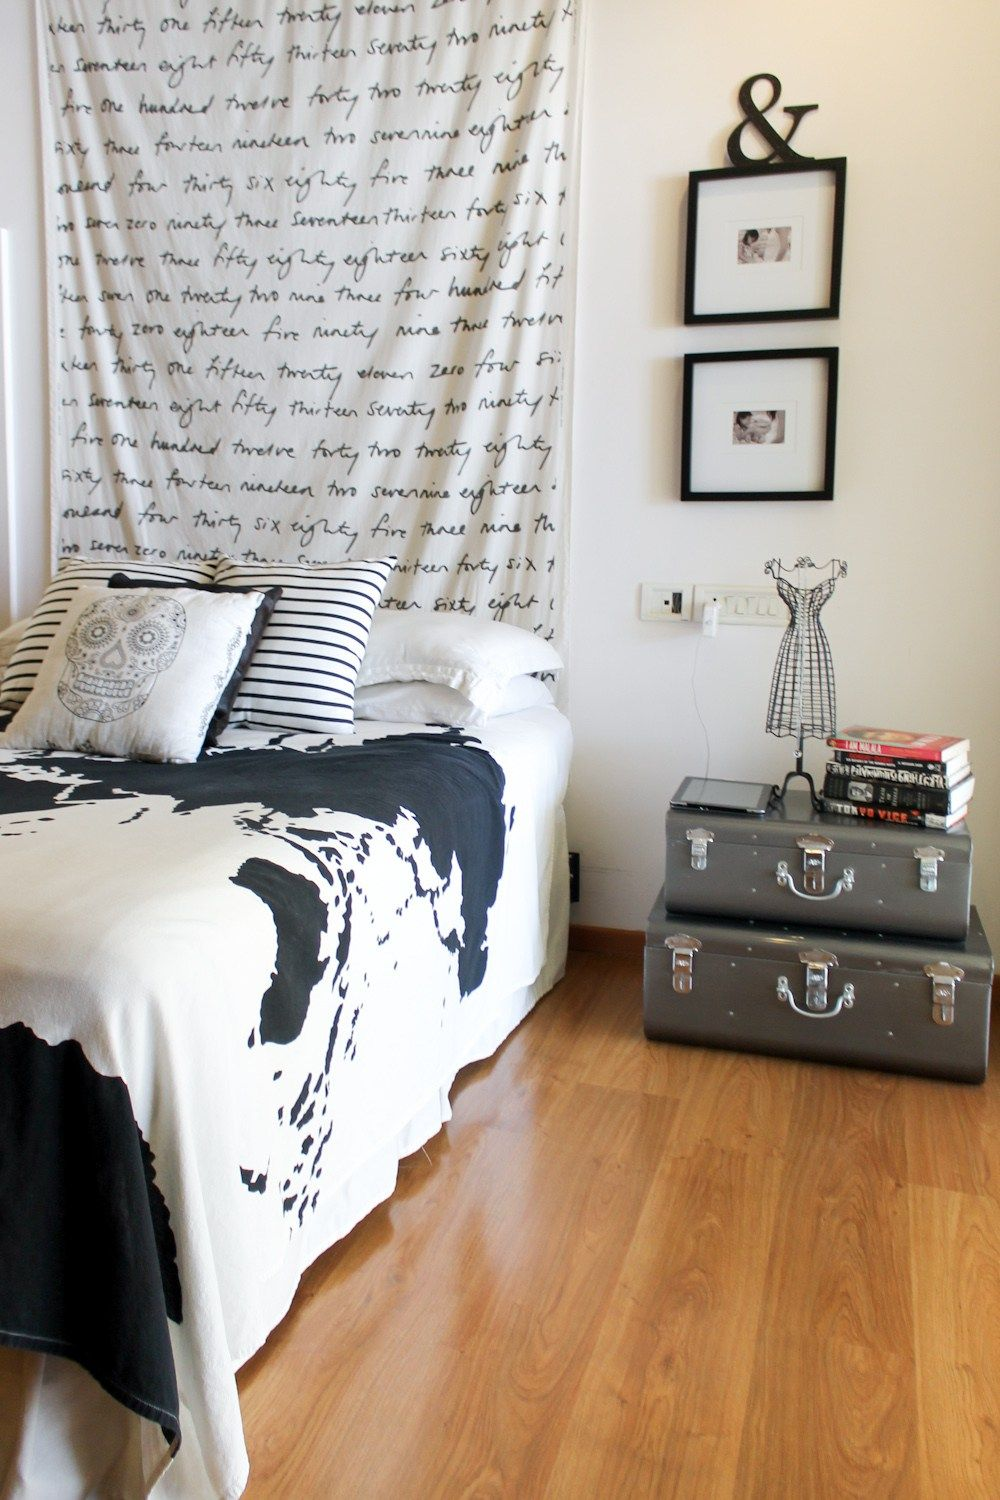 Black white bedroom with ikea fabric urban outfitters world map black white bedroom with ikea fabric urban outfitters world map tapestry indian metal trunks gumiabroncs